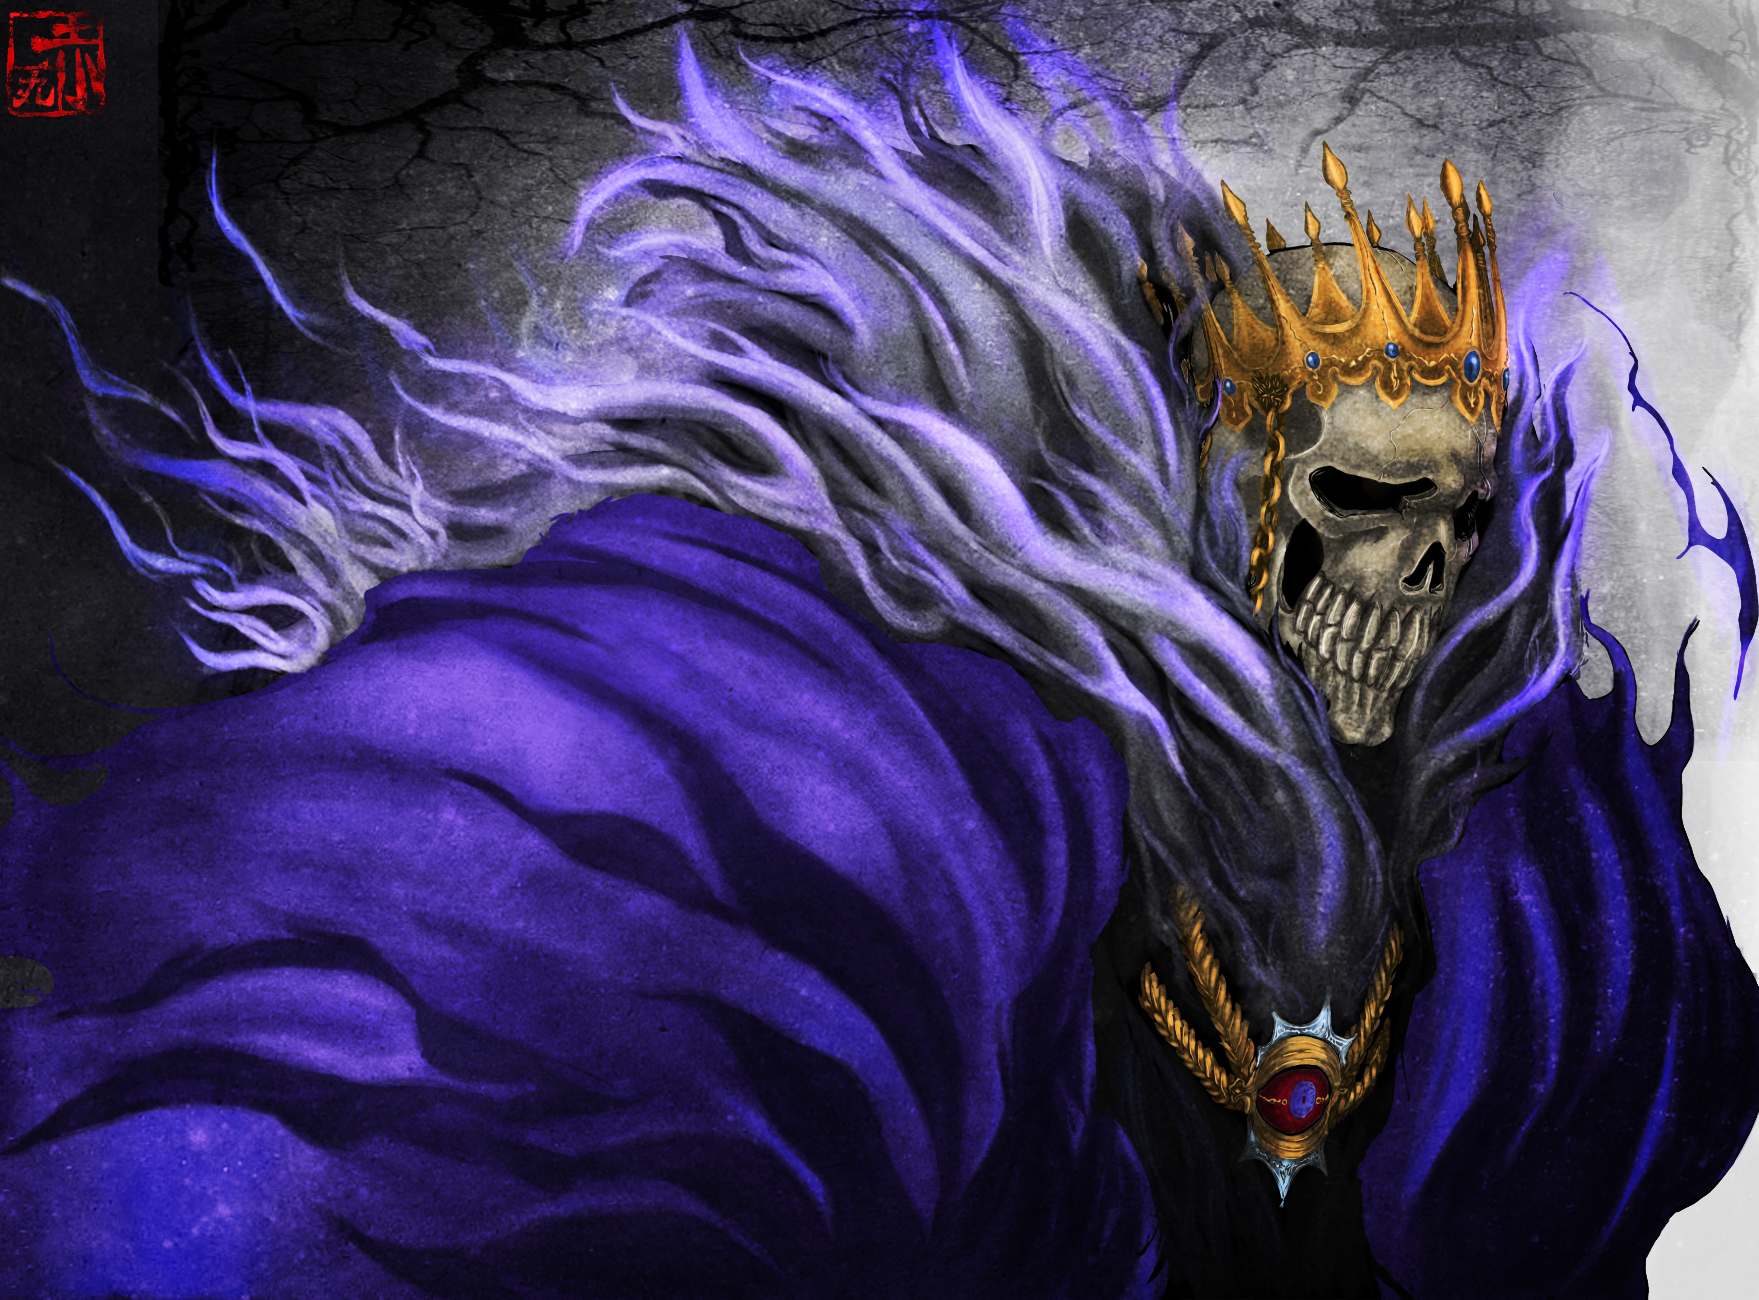 bleach Espada barragan luisenbarn HD Wallpaper